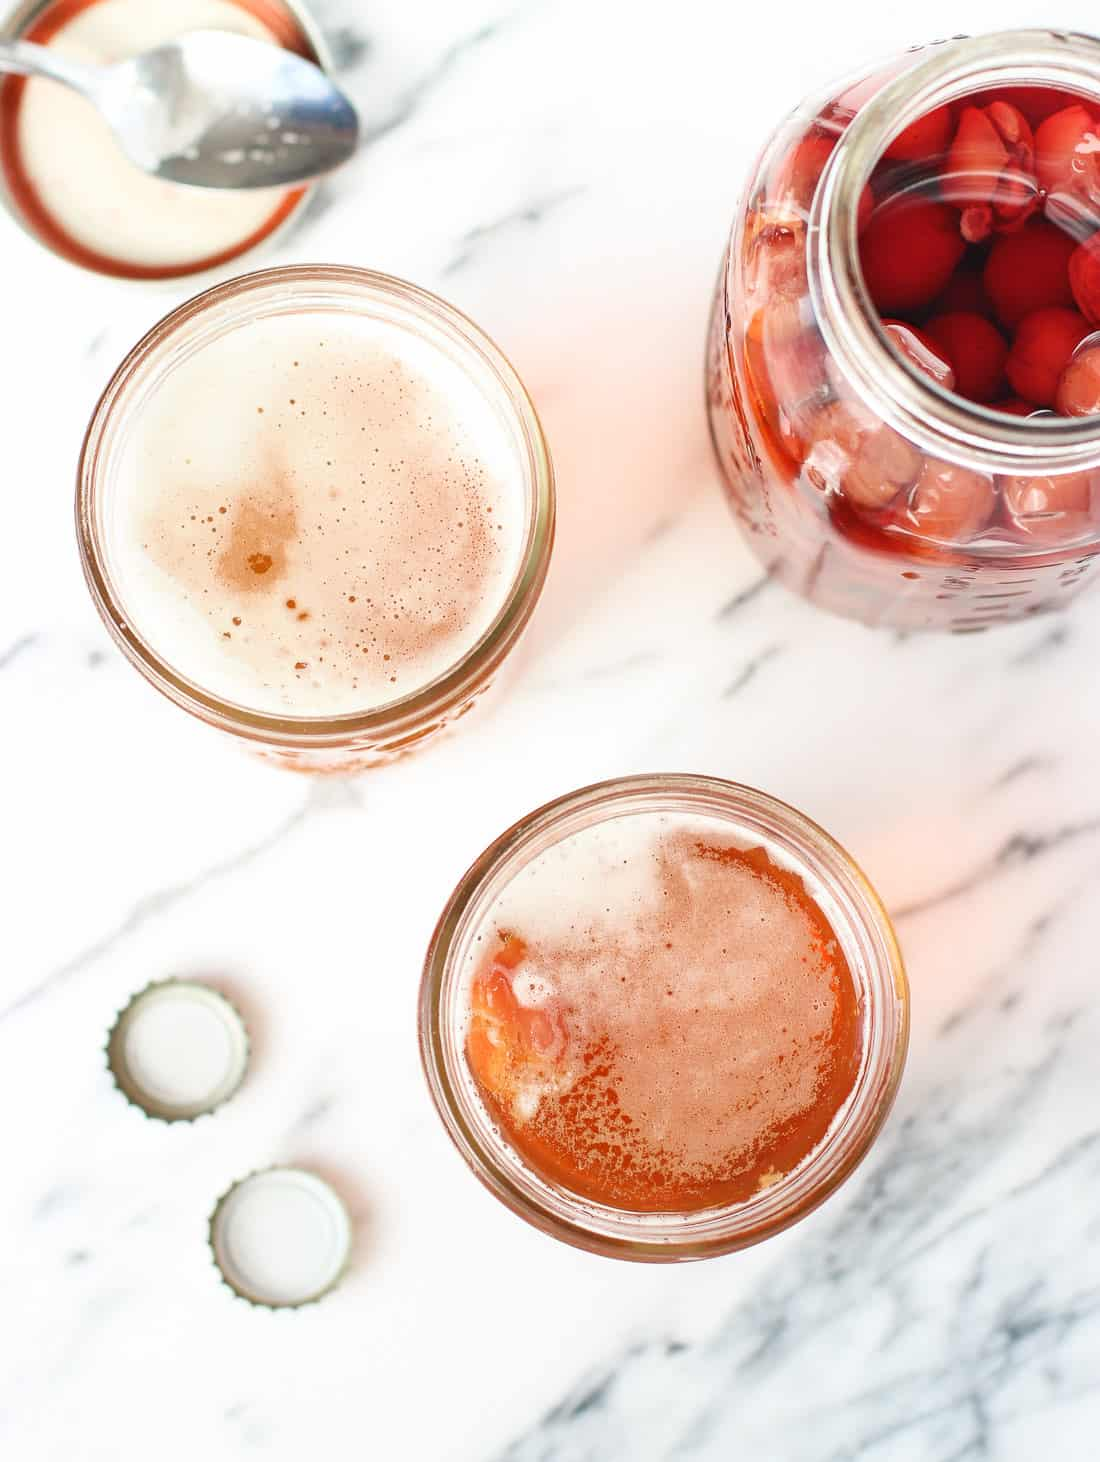 This maraschino snakebite is a fun beer and cider drink with a twist! Homemade maraschino cherries (and some of their liquid) are added for an extra layer of flavor.